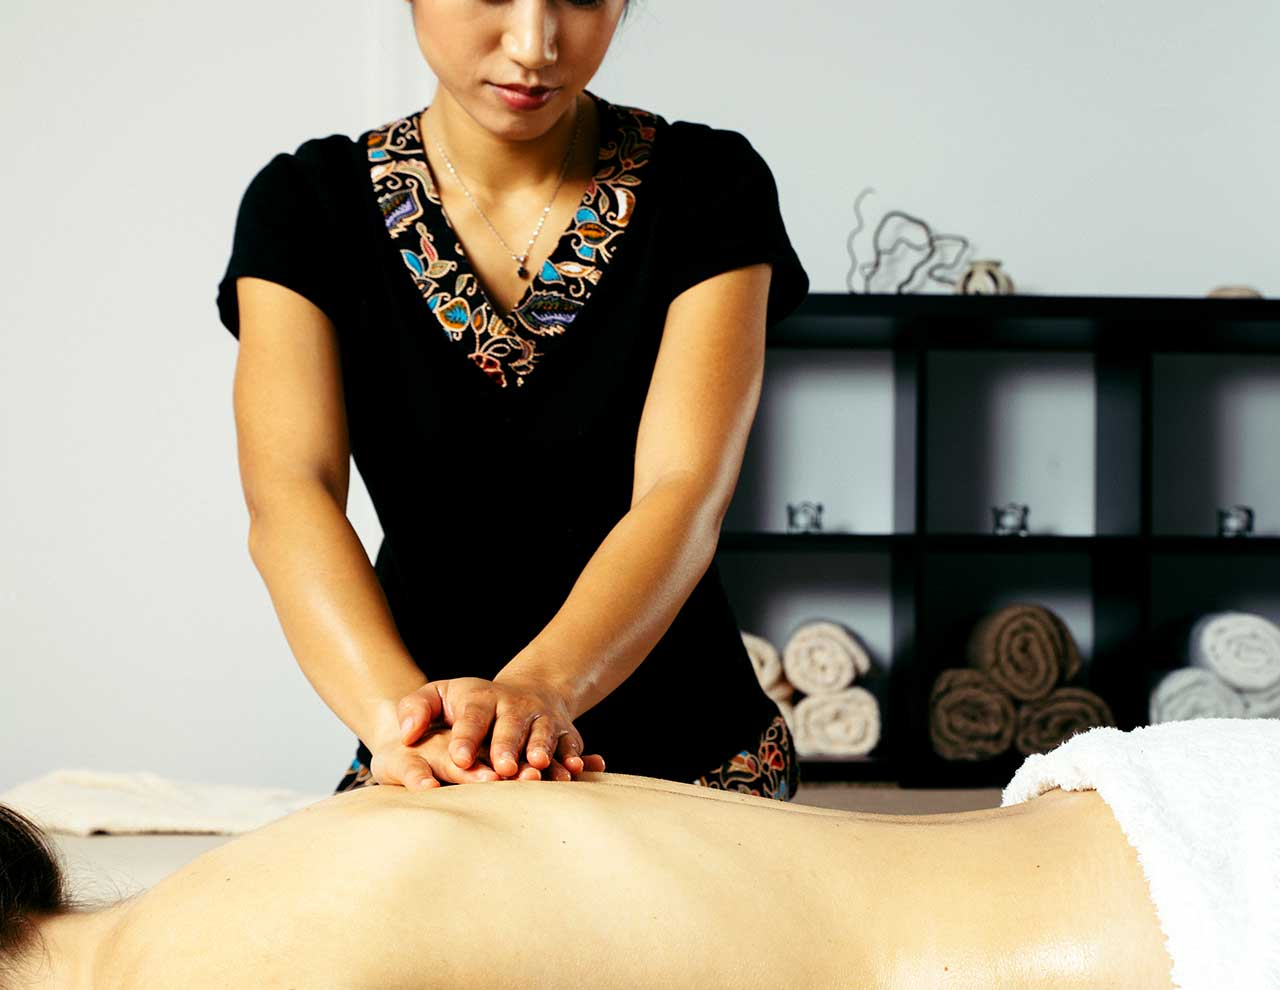 Center of oriental massages, Thai massage with oils